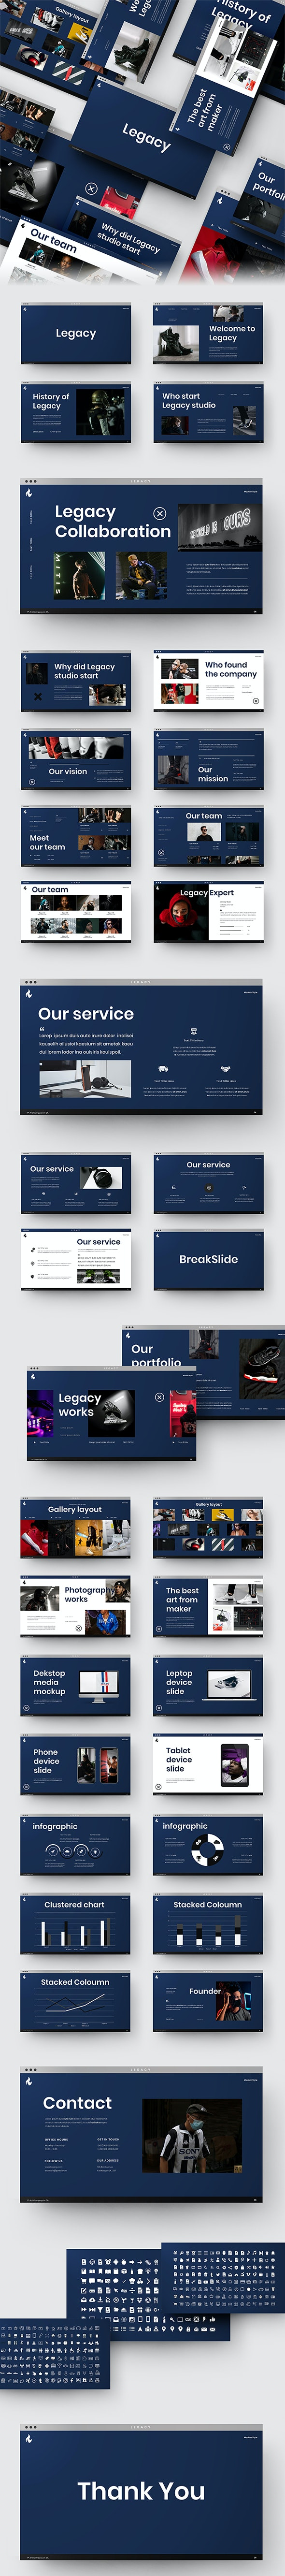 Legacy – Portfolio and Photography PowerPoint Template - Business PowerPoint Templates